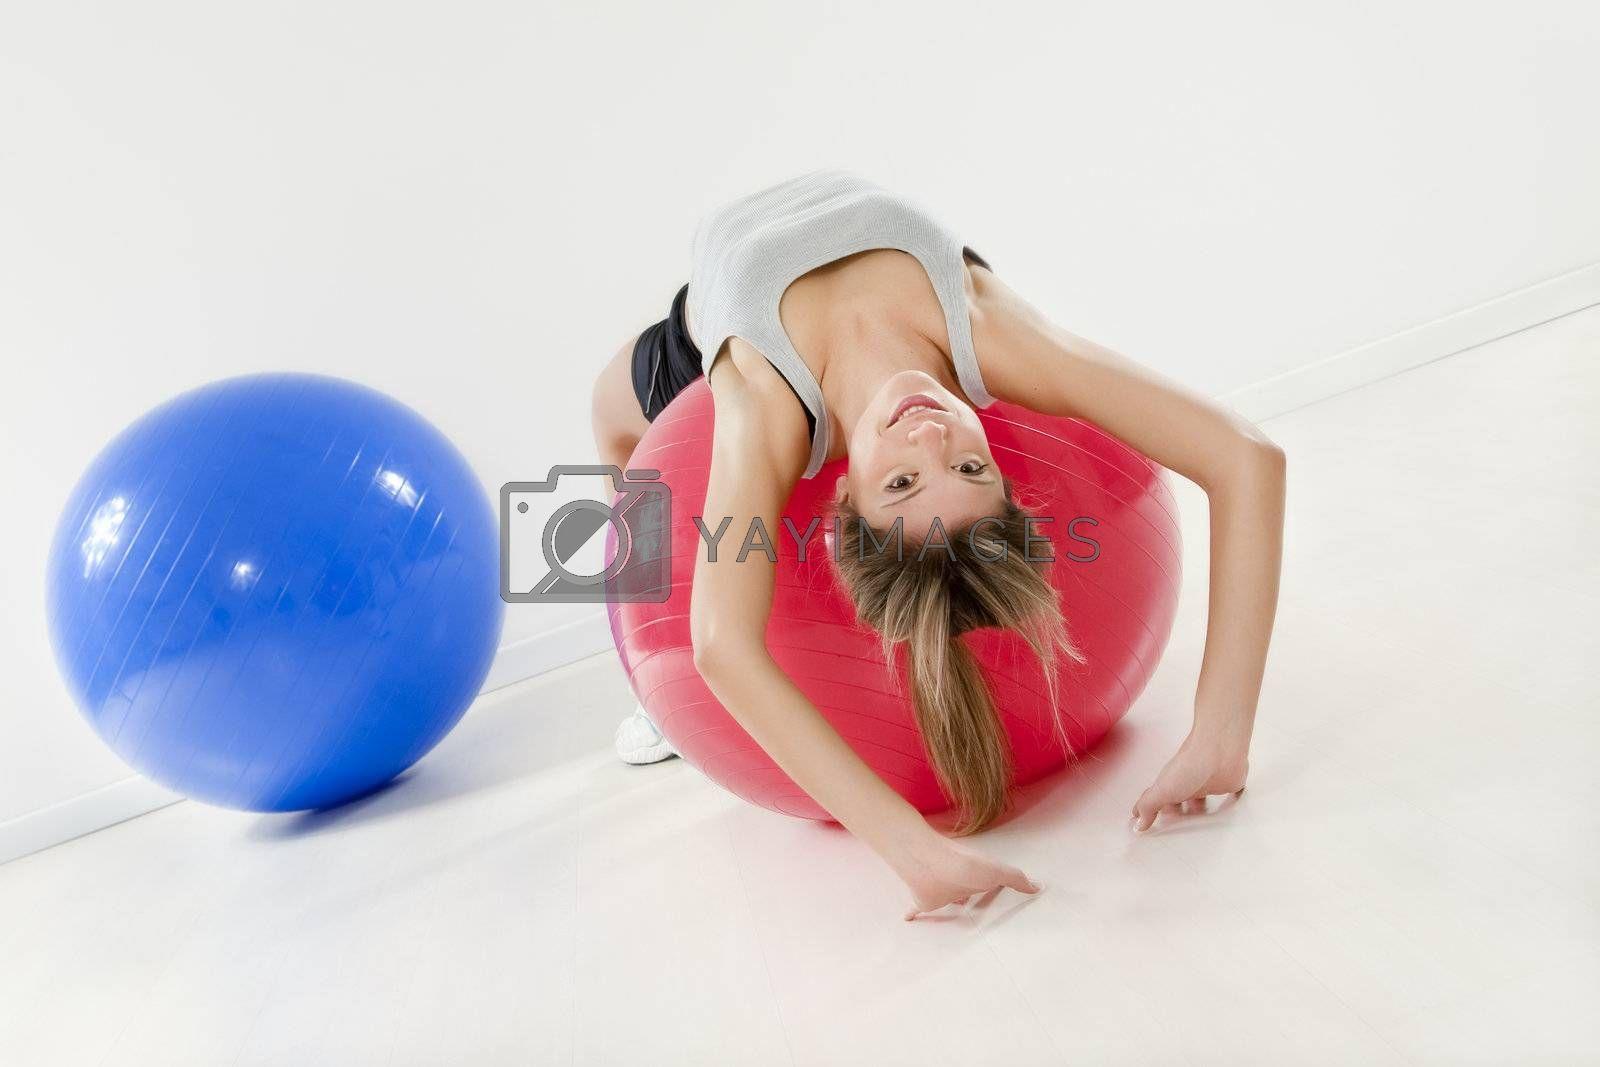 Royalty free image of fitness by diego_cervo